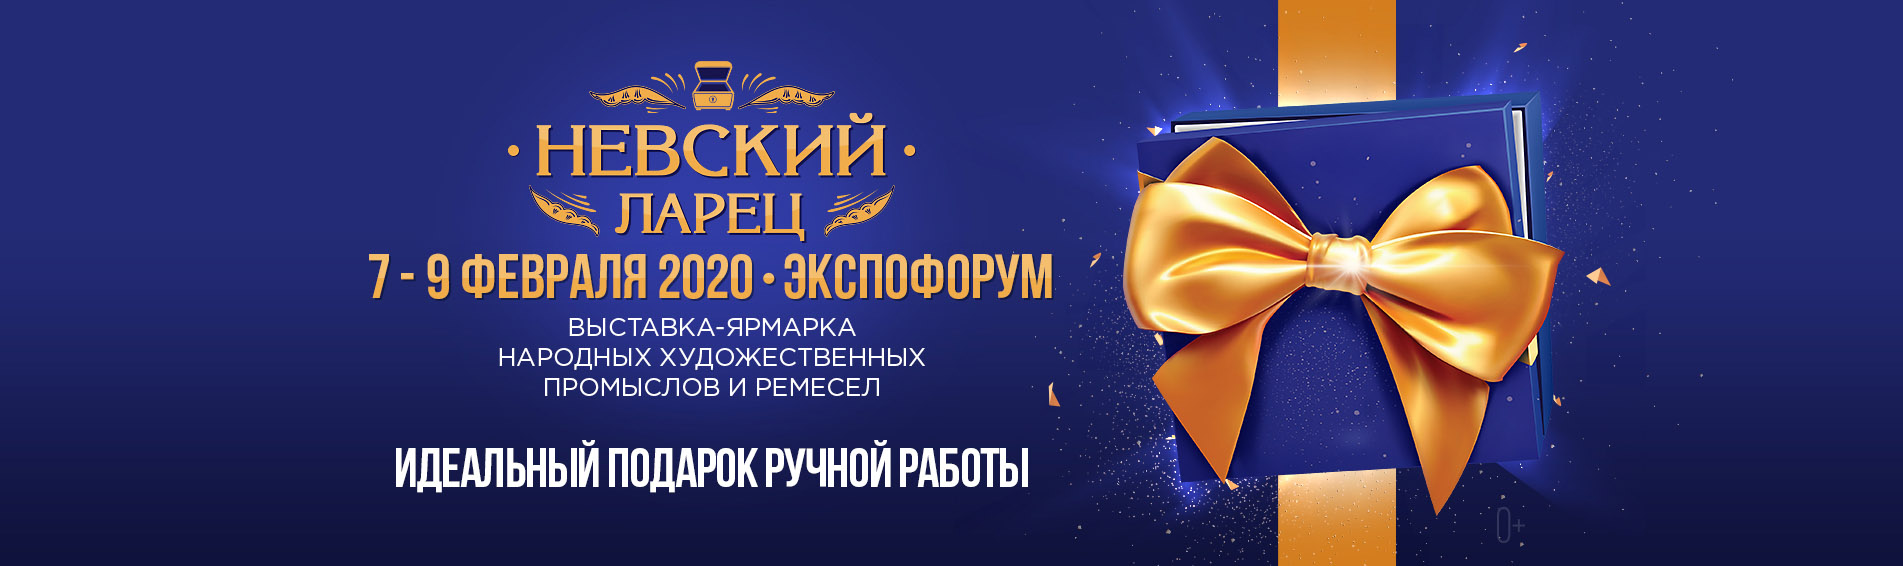 Transfer between the airports of St. Petersburg and the Nevsky Casket 2020 exhibition